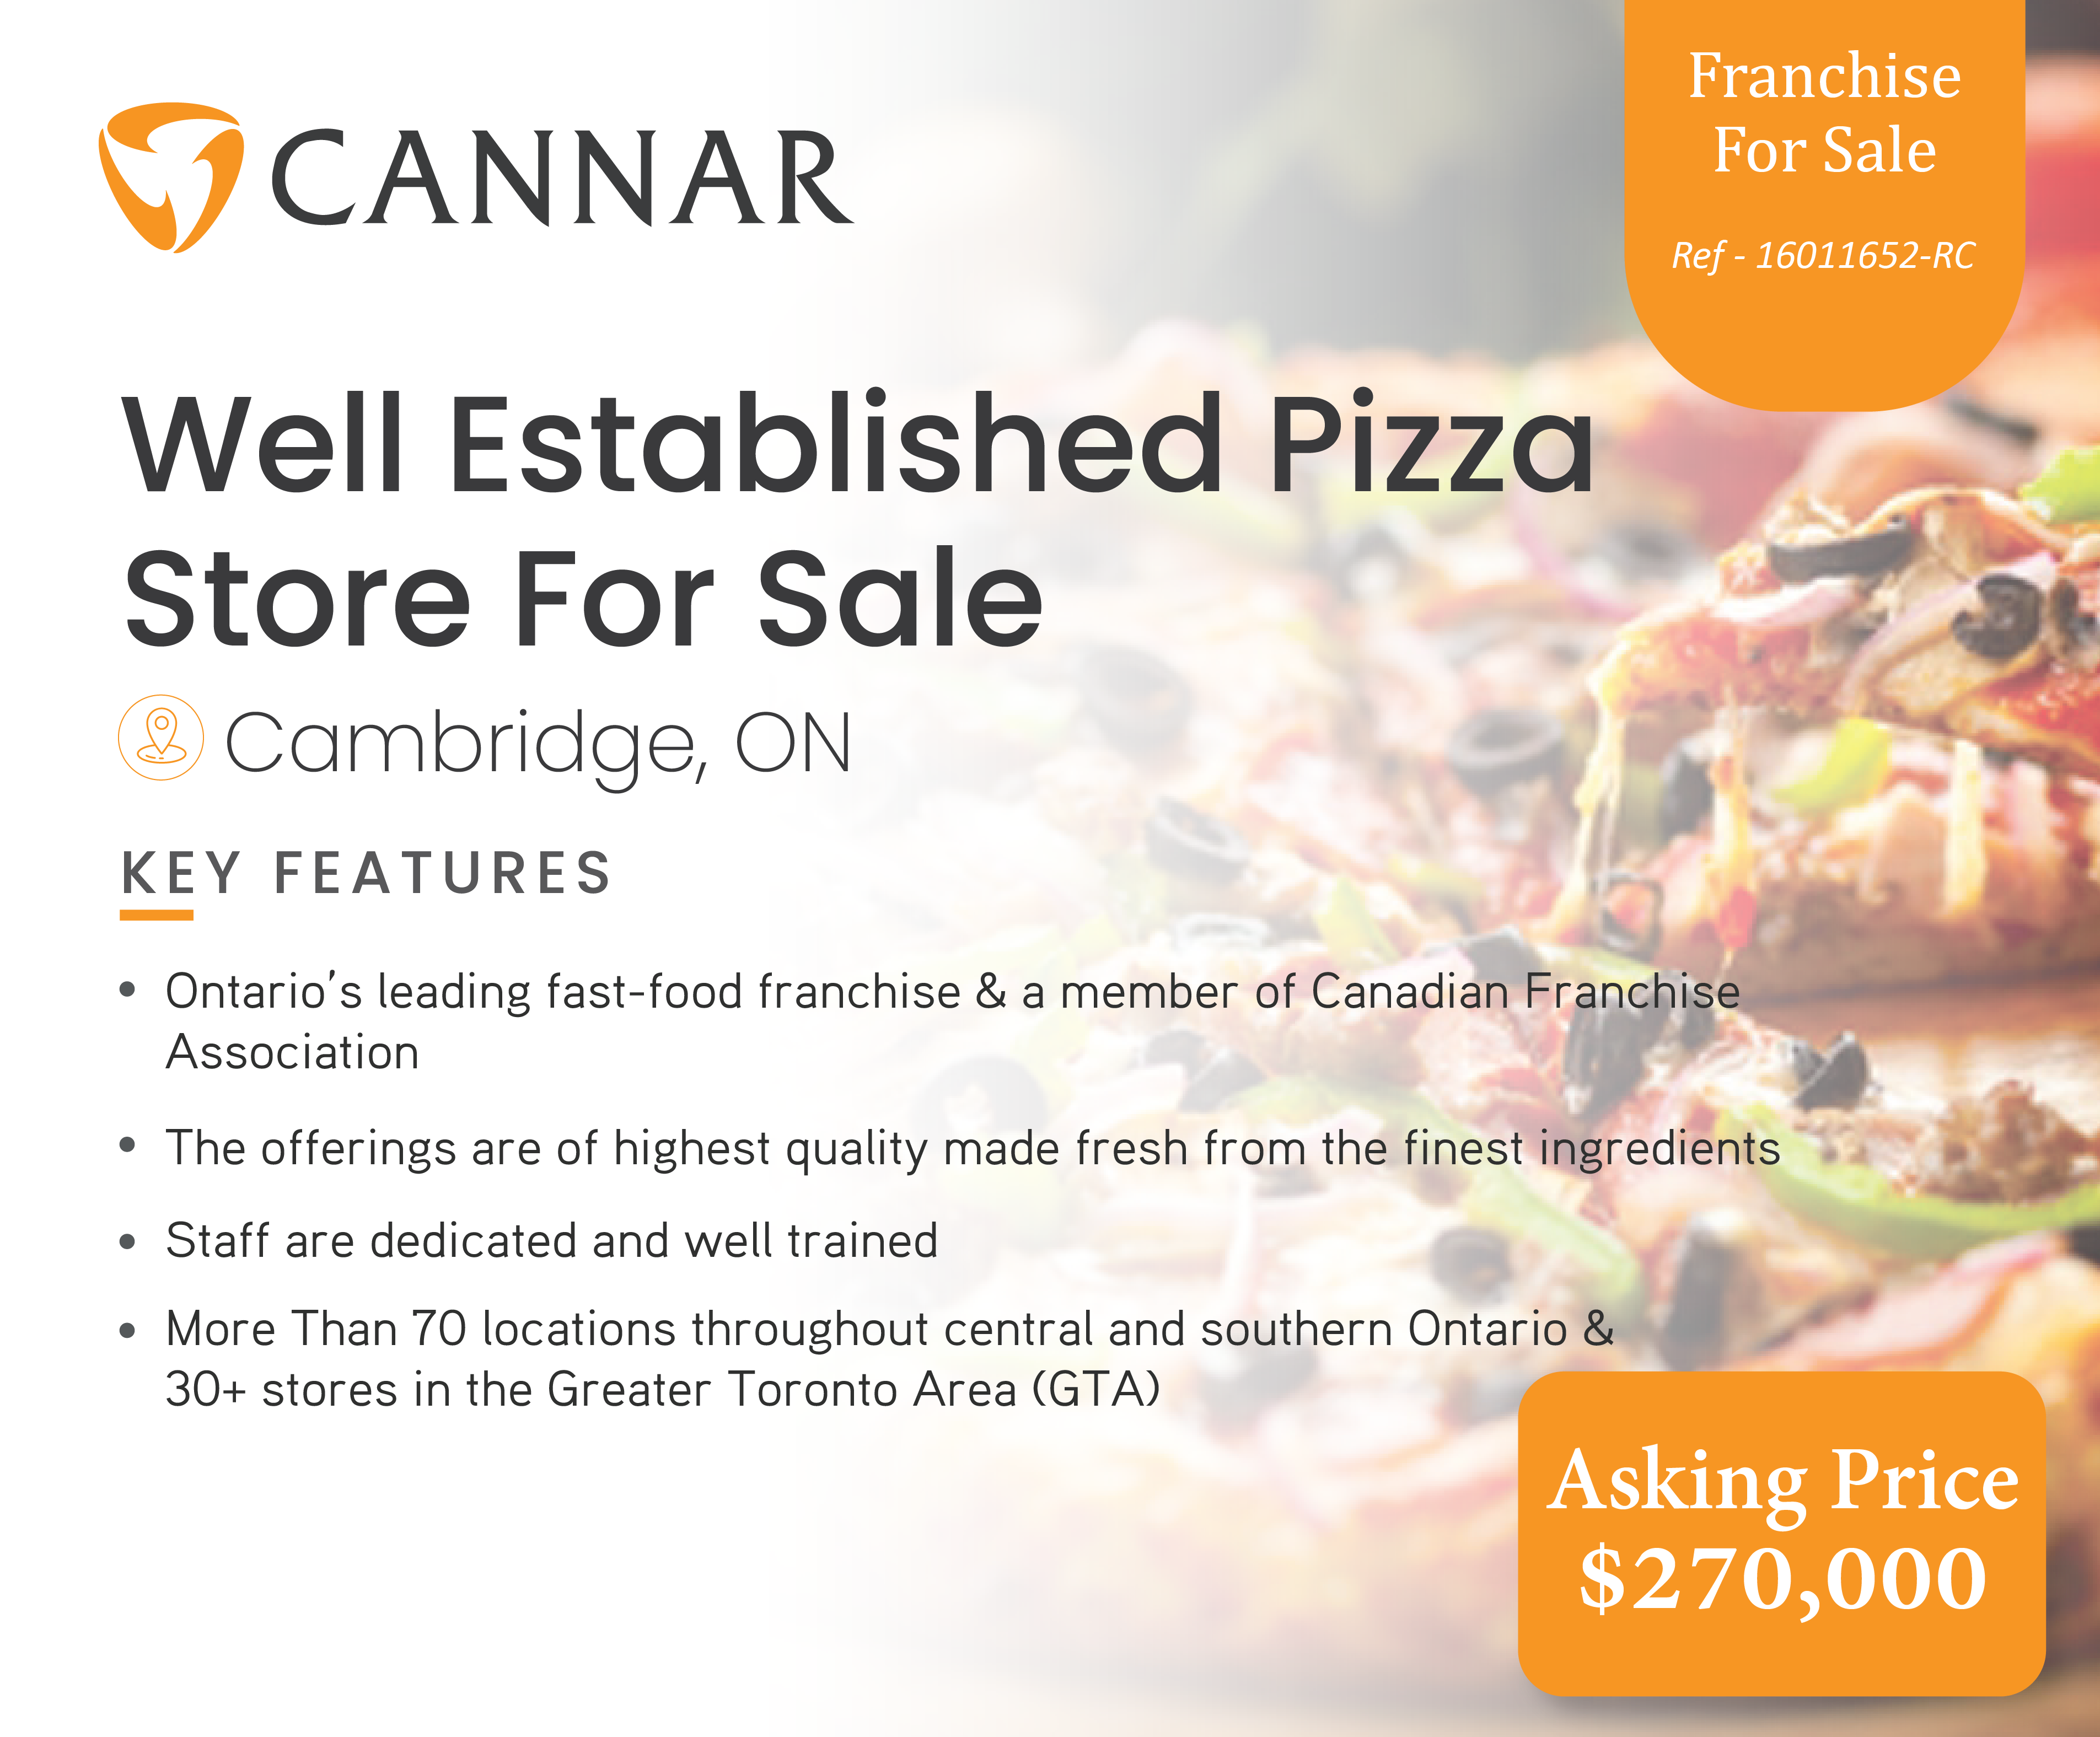 Well Established Pizza Store For Sale